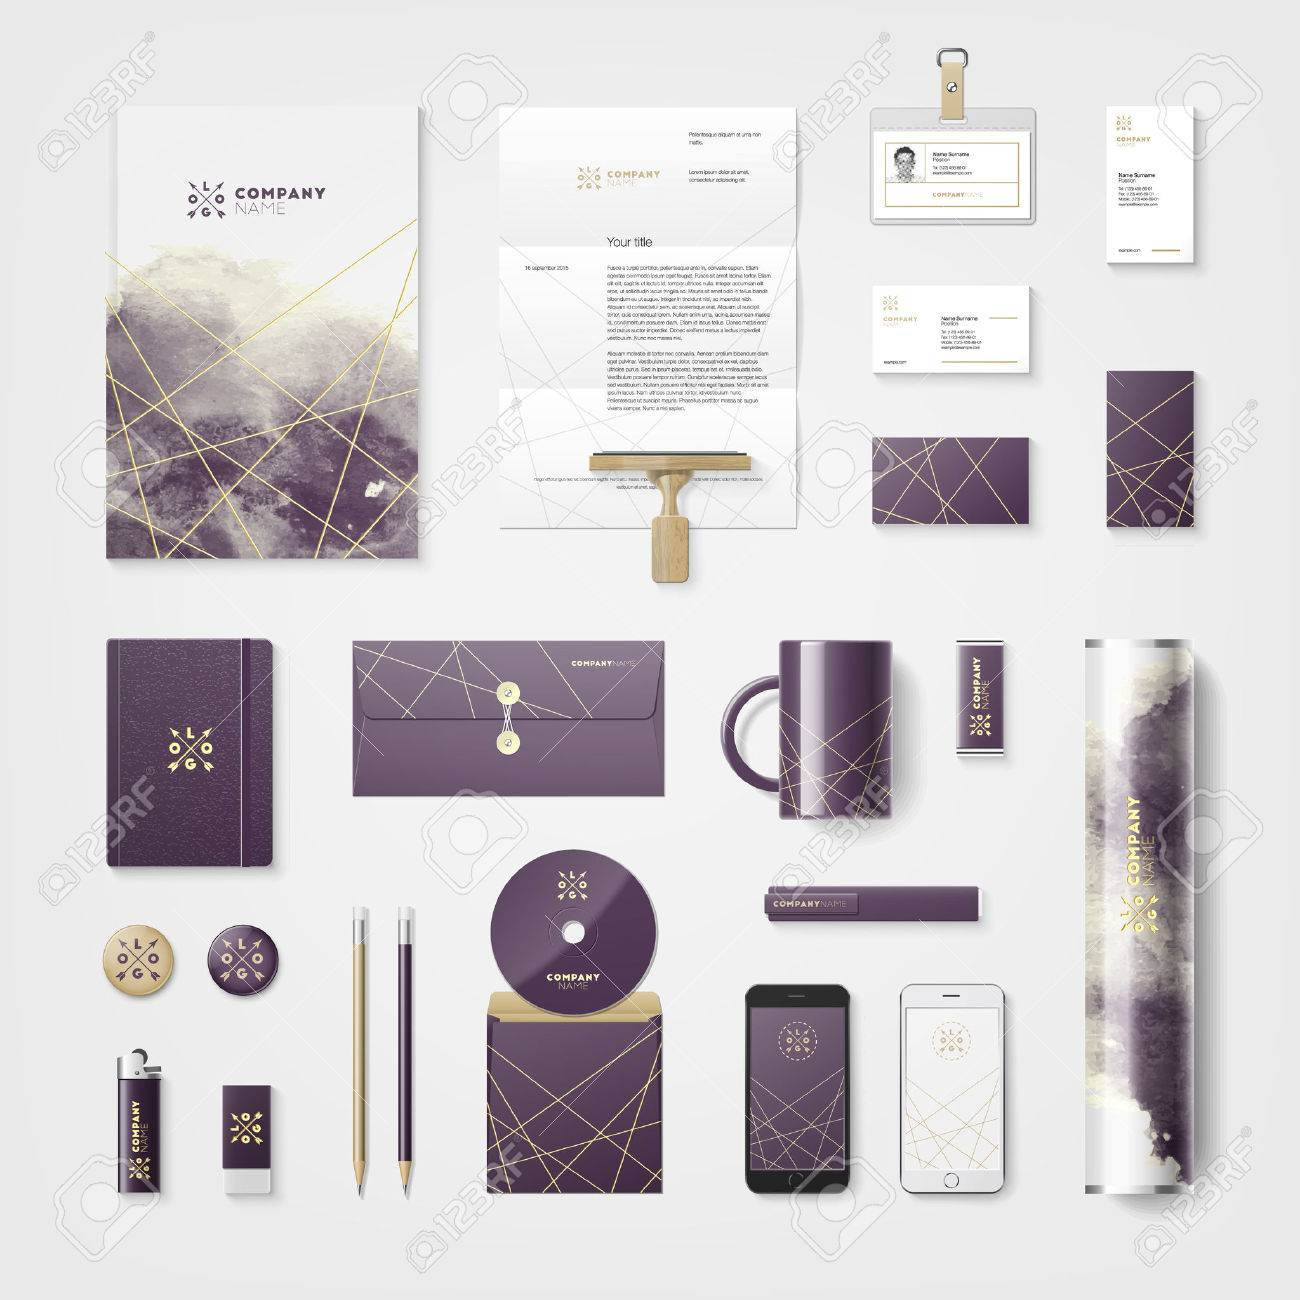 trendy watercolor cross processing corporate identity template